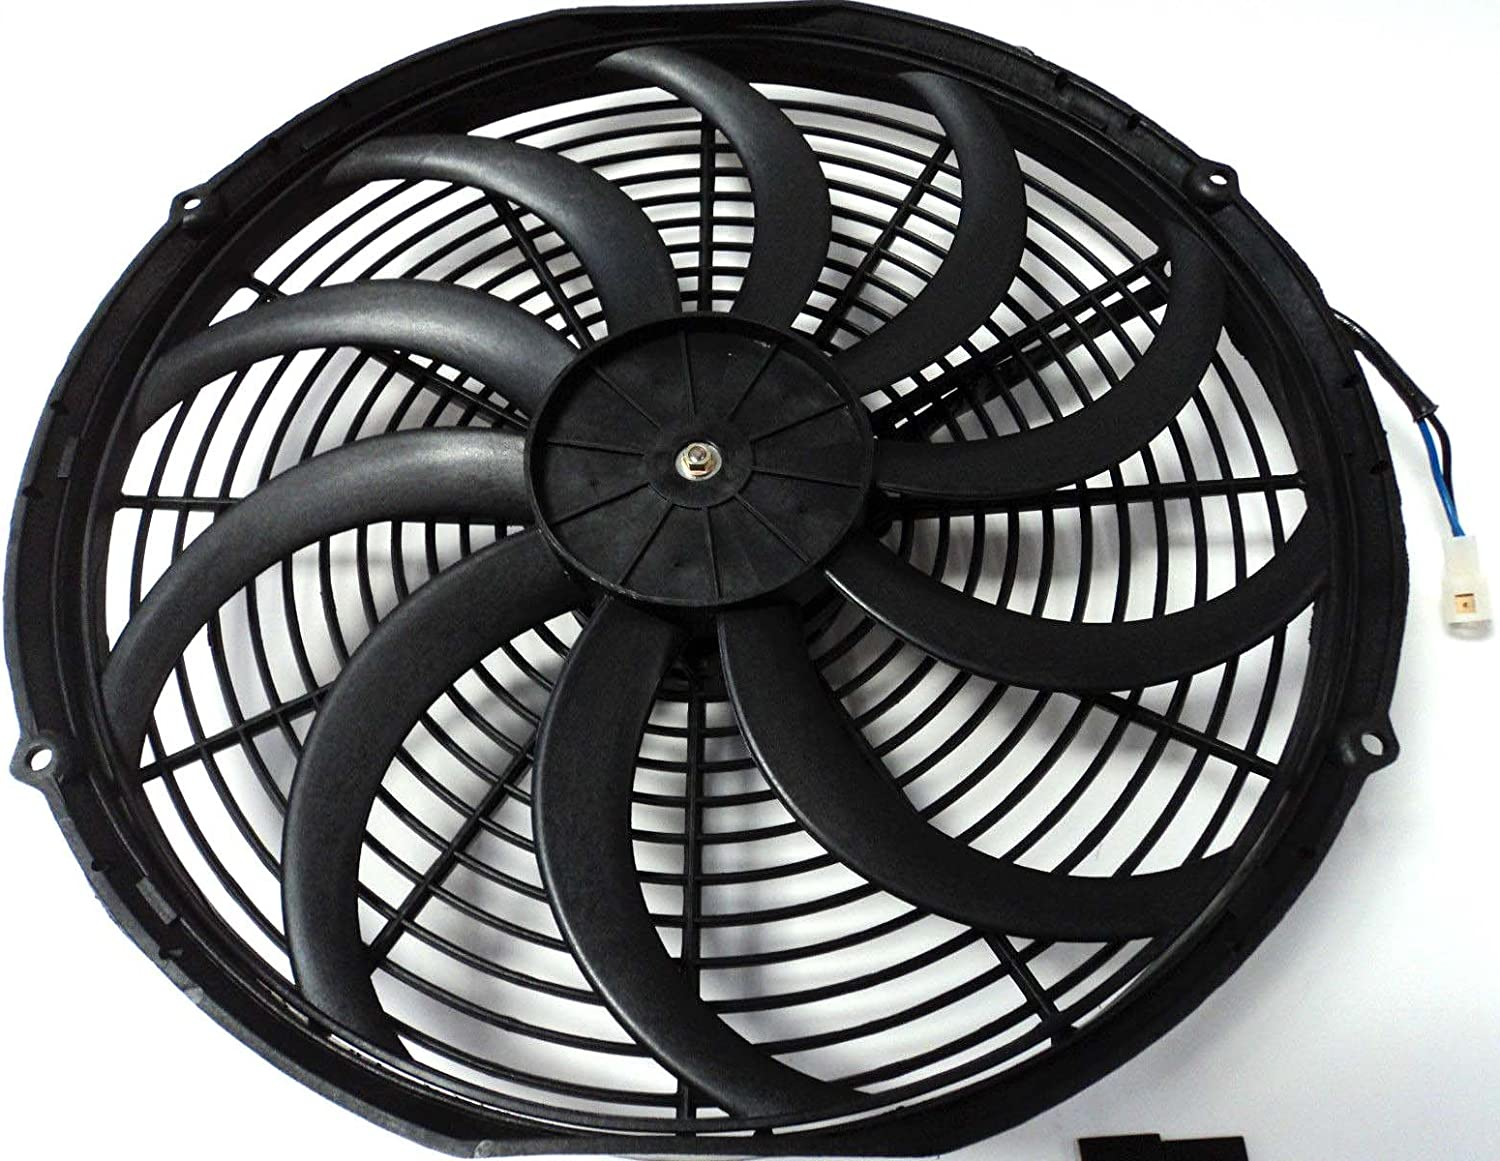 DEMOTOR PERFORMANCE 16 Heavy Duty Radiator Electric Fan 3000 CFM Reversible For SBC BBC 350 //Thermostat